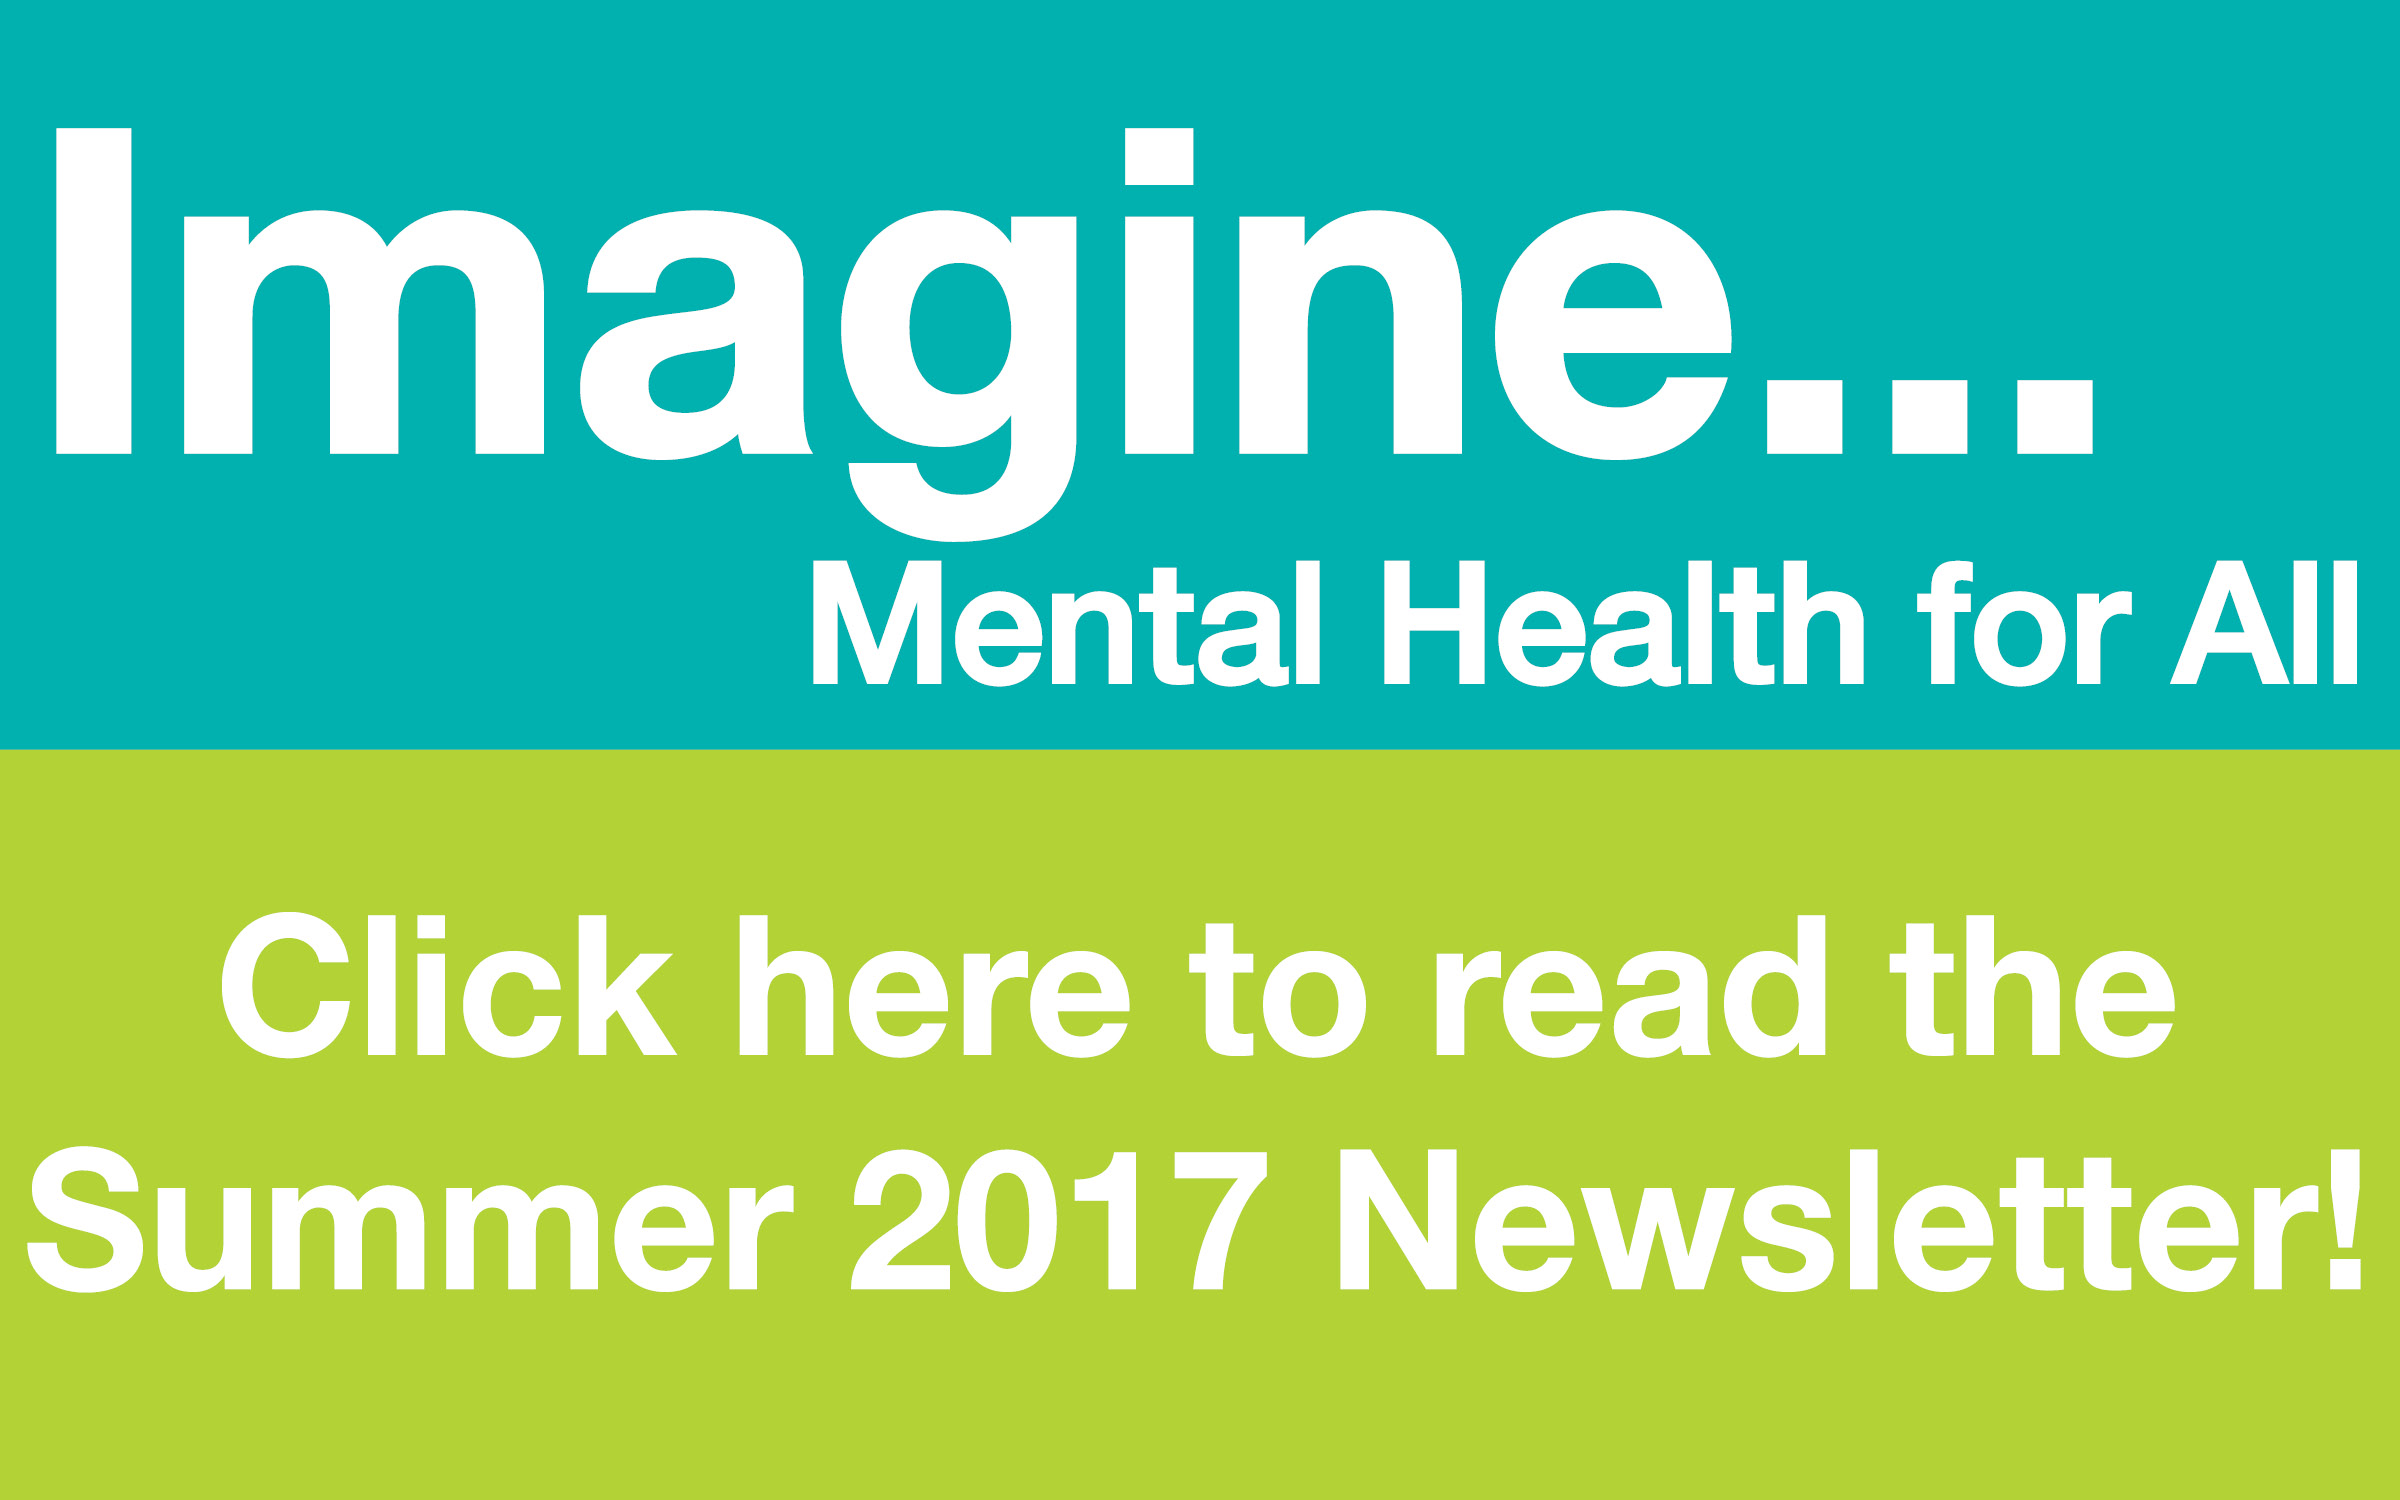 Click here to read the Summer 2017 Newsletter